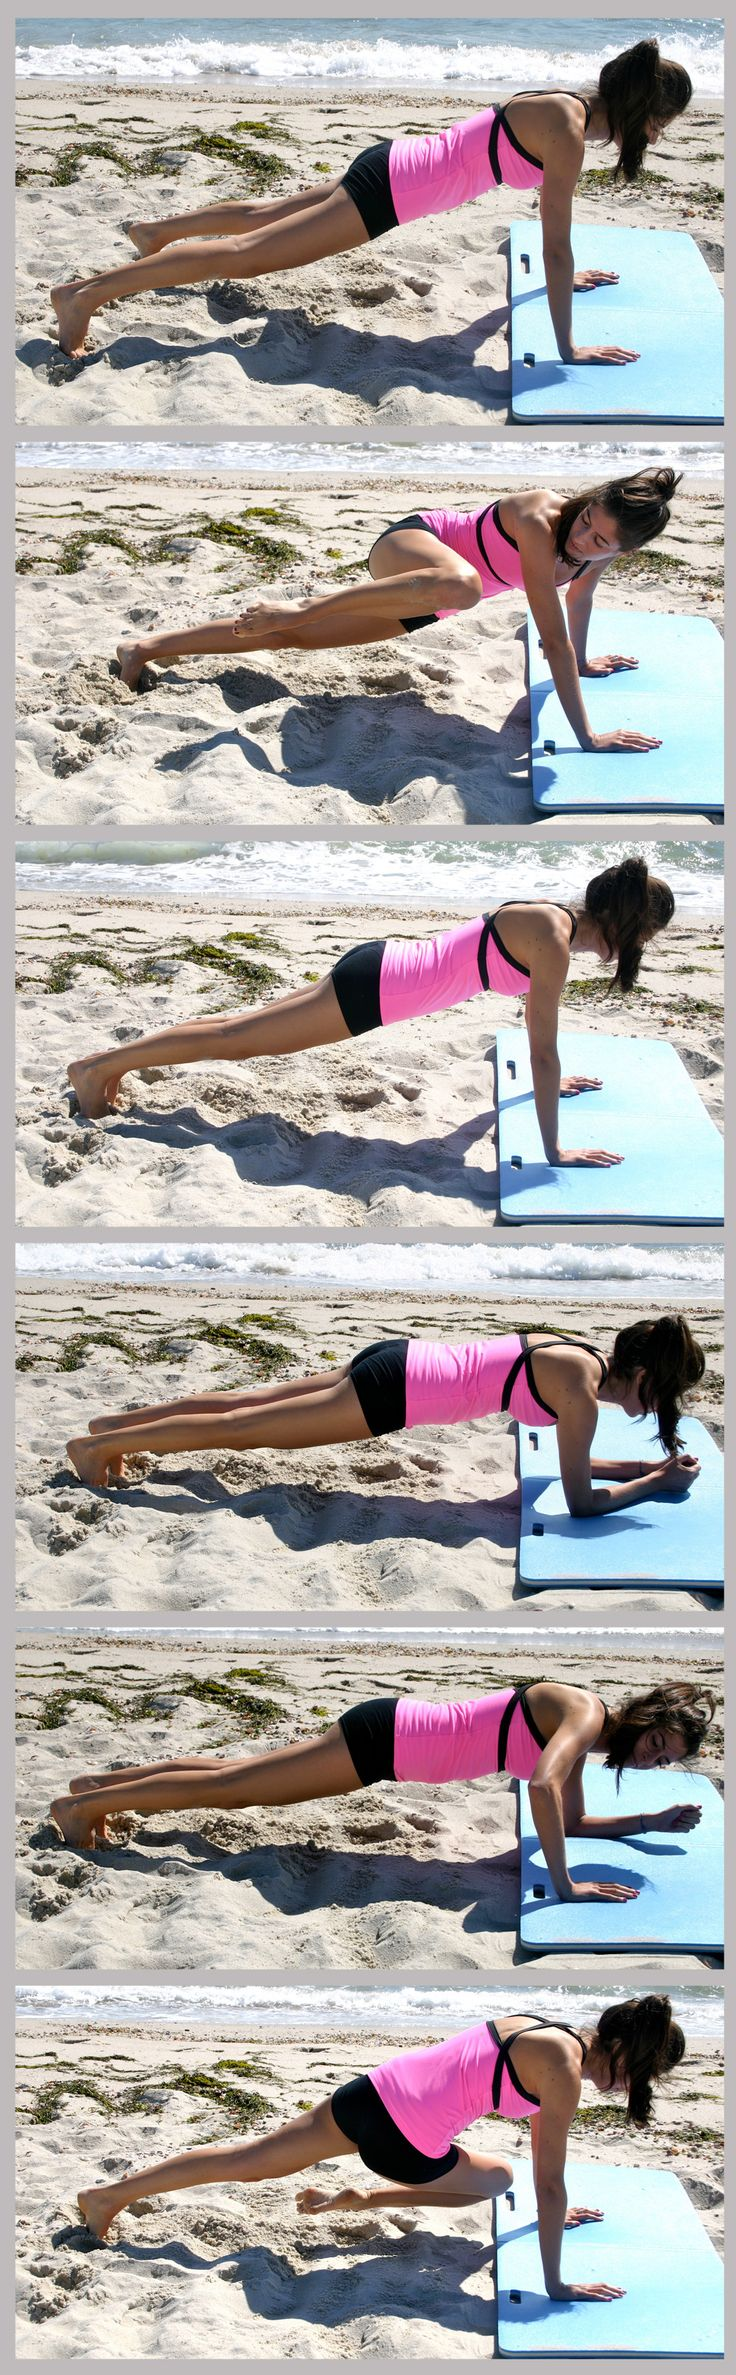 These are so hard! FEEL THE BURN! Plank Workout - Do each of the 6 moves for 20 seconds. Repeat entire 2-minute circuit 3 times, taking a 30-second break in between each round -- I like to add some chaturangas! Nice burn!